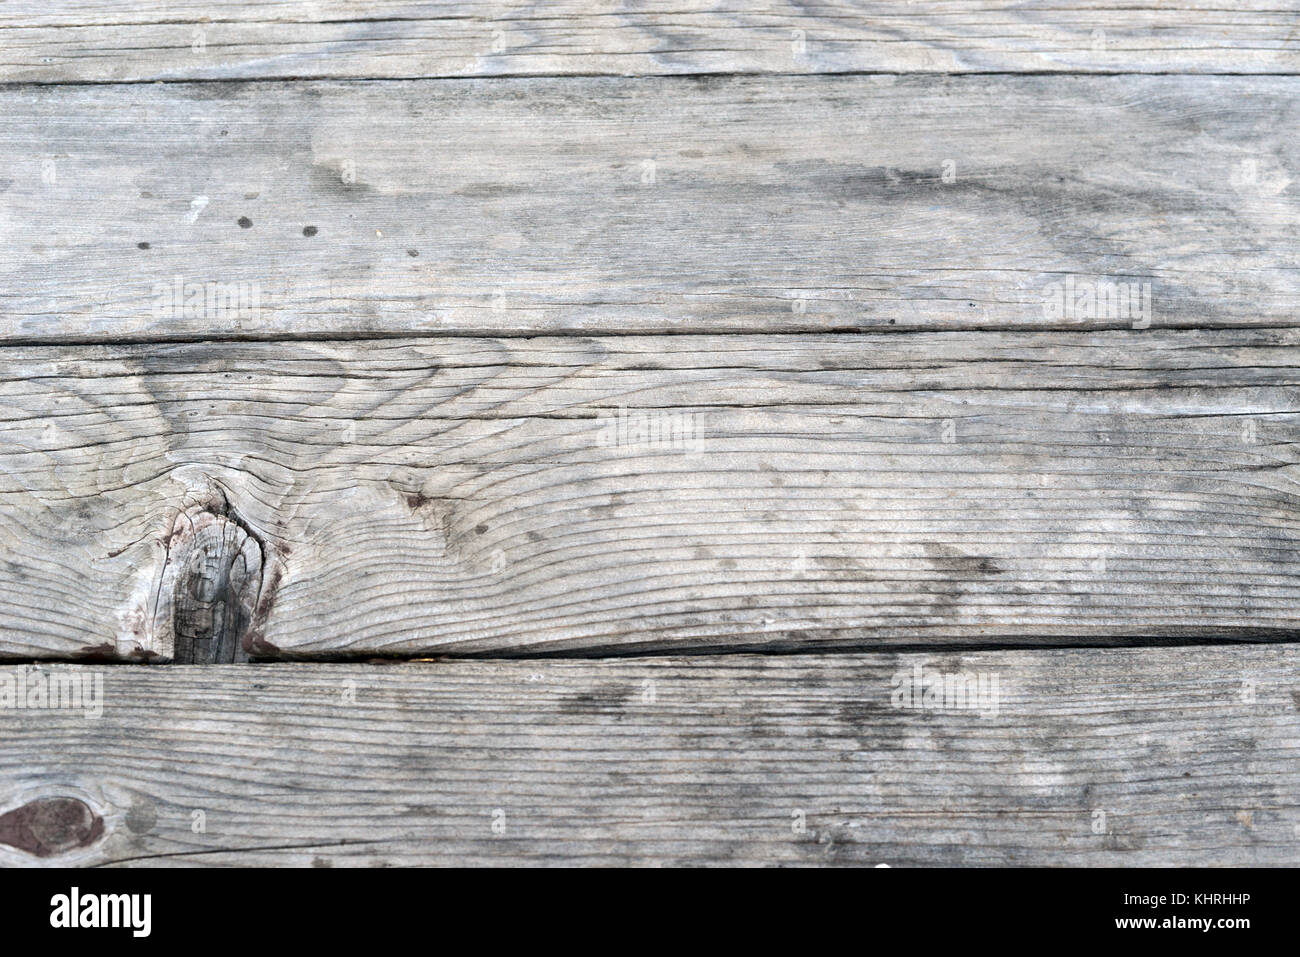 Aged planks stock photos images alamy